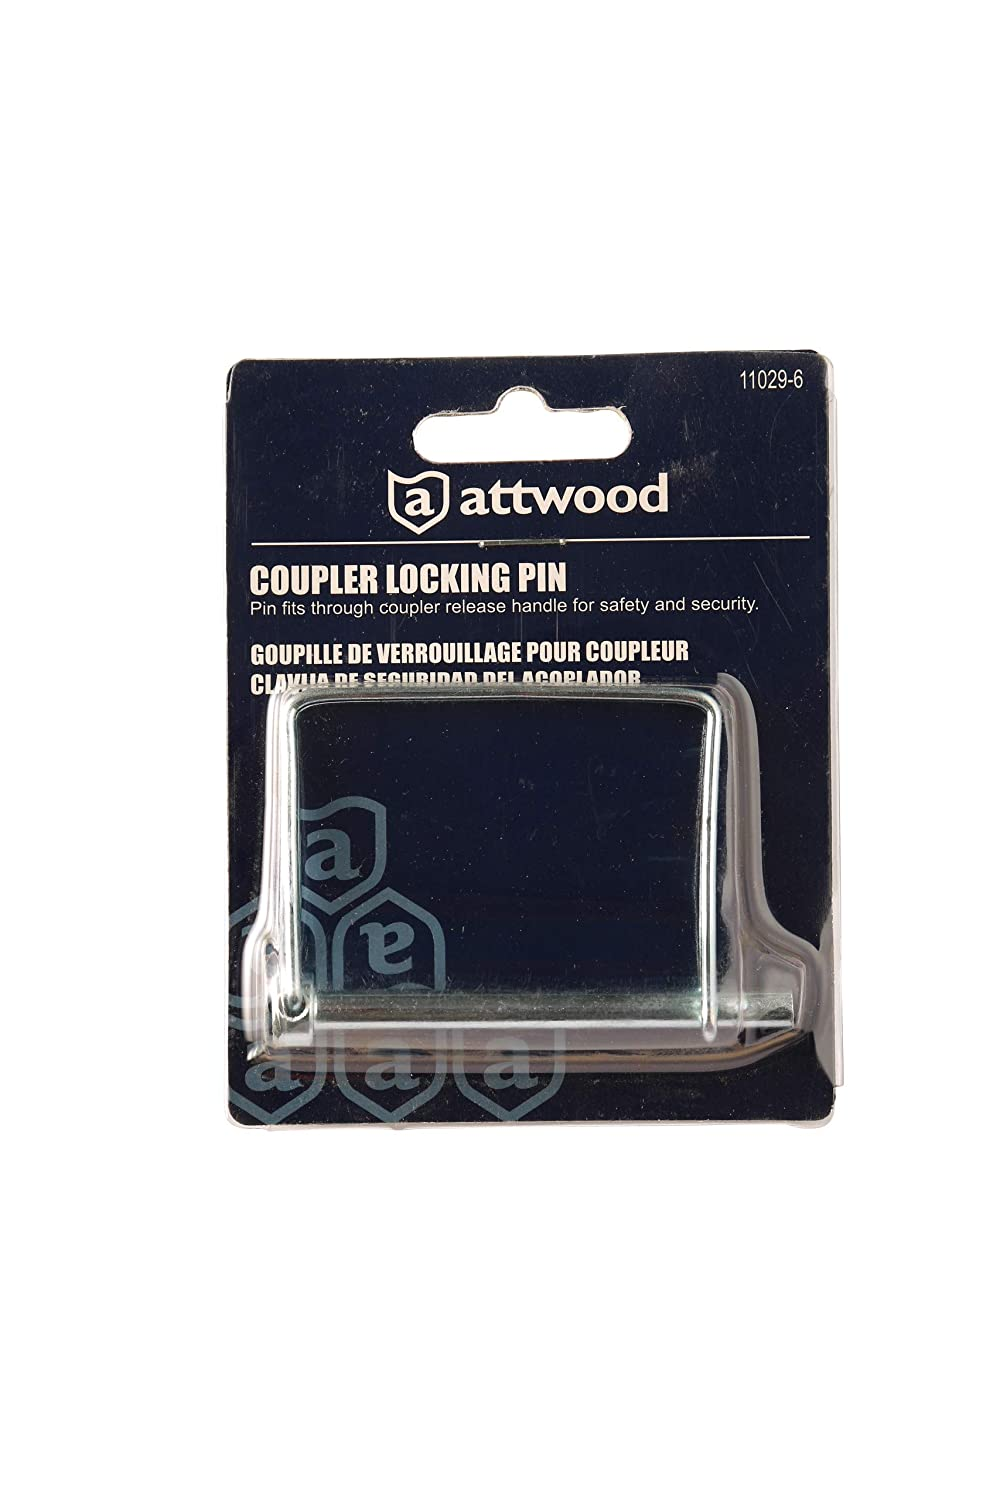 attwood 11029-6 Zinc-Plated Steel Trailer Safety Coupler Locking Pin